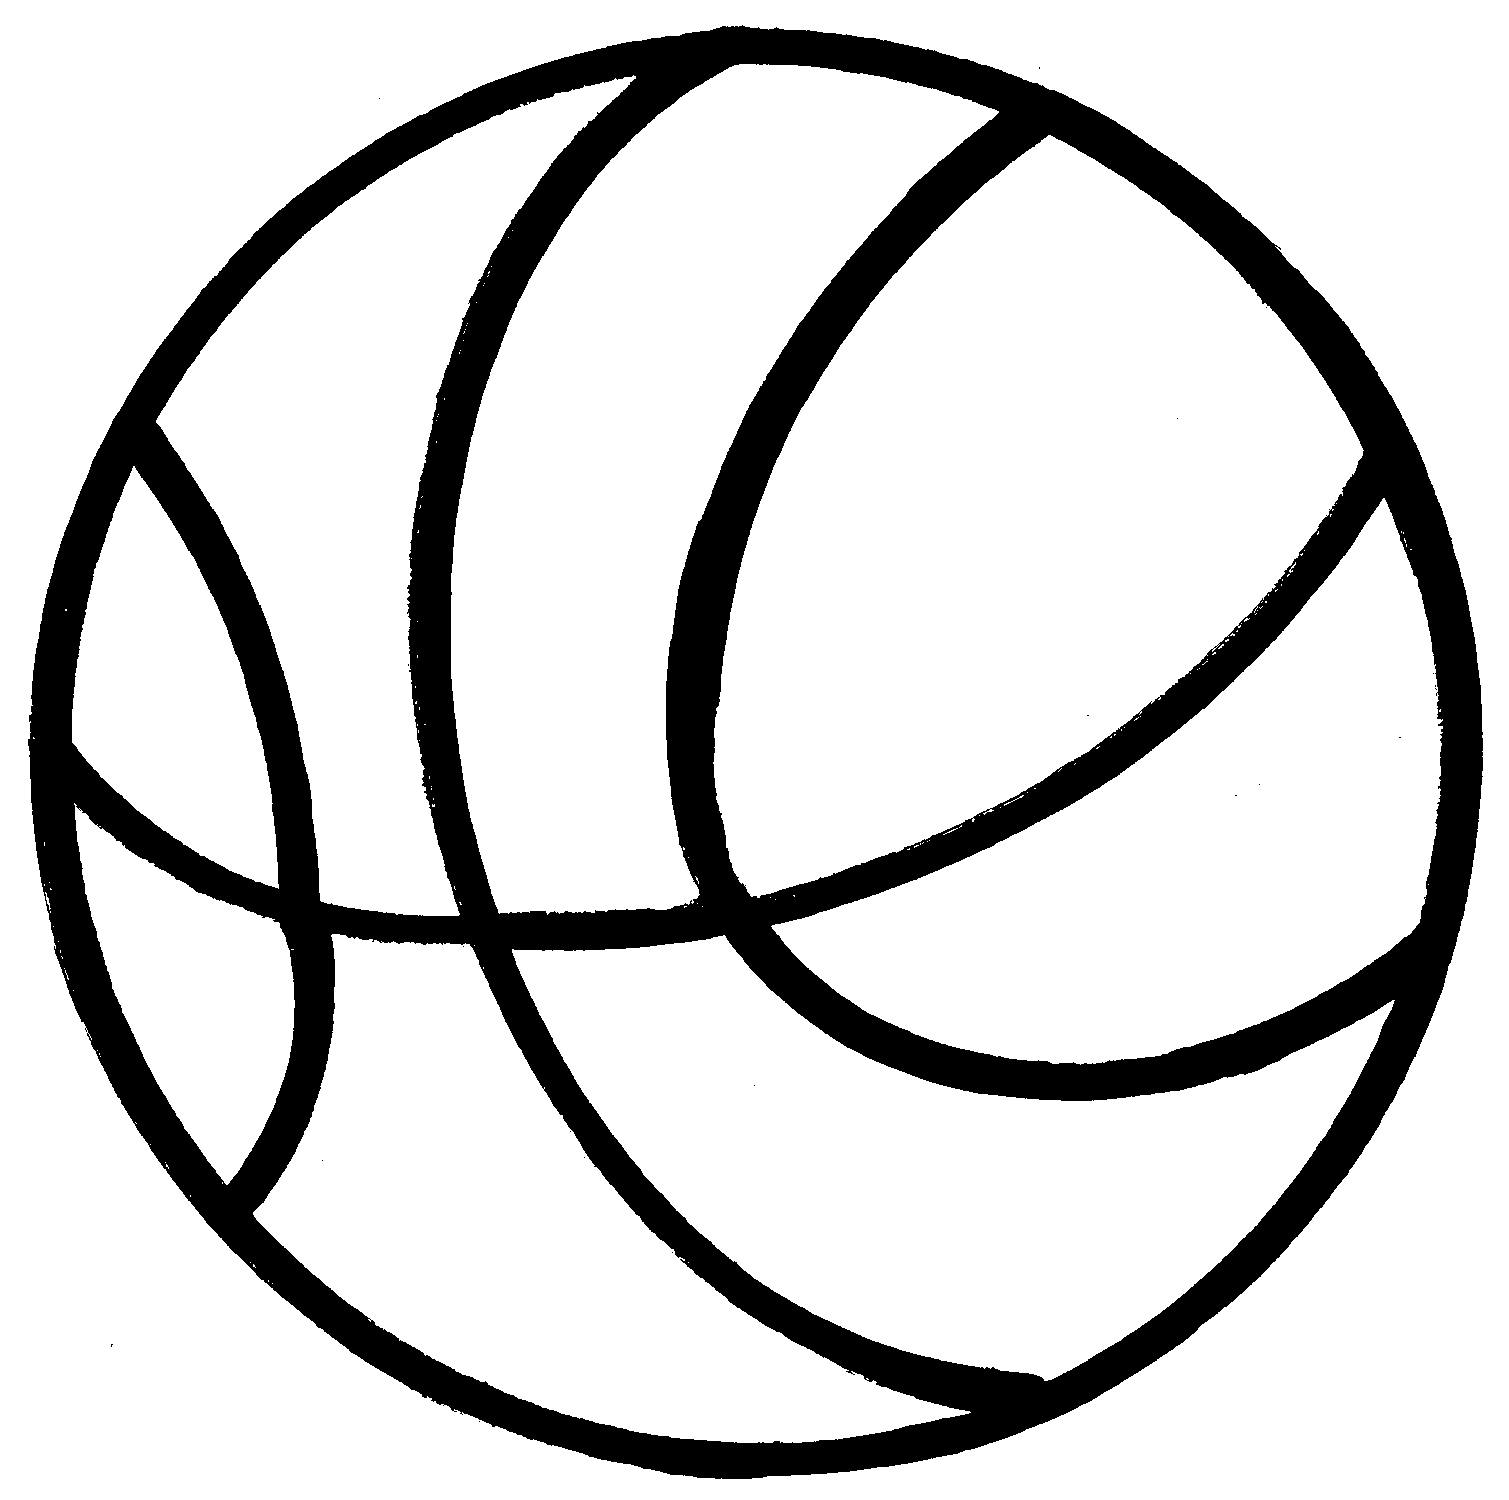 Basketball clipart black and whit picture stock 13 White Basketball Graphic Images - Basketball Clip Art Black and ... picture stock